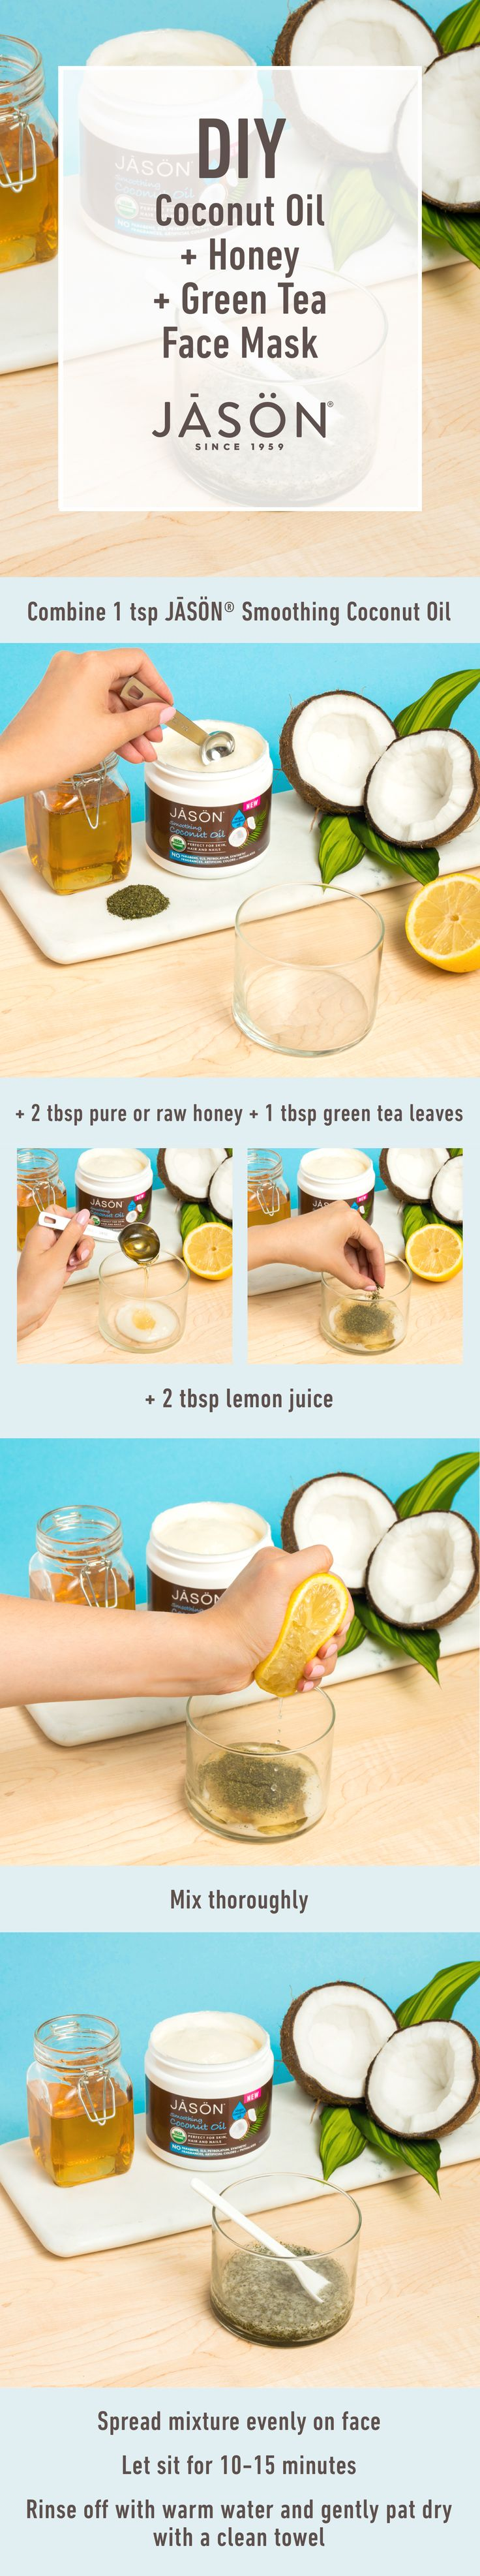 DIY easy face mask with JĀSÖN® Unrefined Virgin Coconut Oil, honey, and green tea. It only take a few minutes, and will leave your skin feeling moisturized and radiant.   1 tsp JĀSÖN® Smoothing Coconut Oil 2 tbsp pure or raw honey 1 tbsp green tea leaves (1/2 the amount that comes in 1 tea bag) 2 tbsp lemon juice  1. Thoroughly mix together all ingredients in a bowl with a fork or whisk 2. Spread mixture evenly on face 3. Let sit for 10-15 minutes 4. Rinse off with warm water and gently pat…